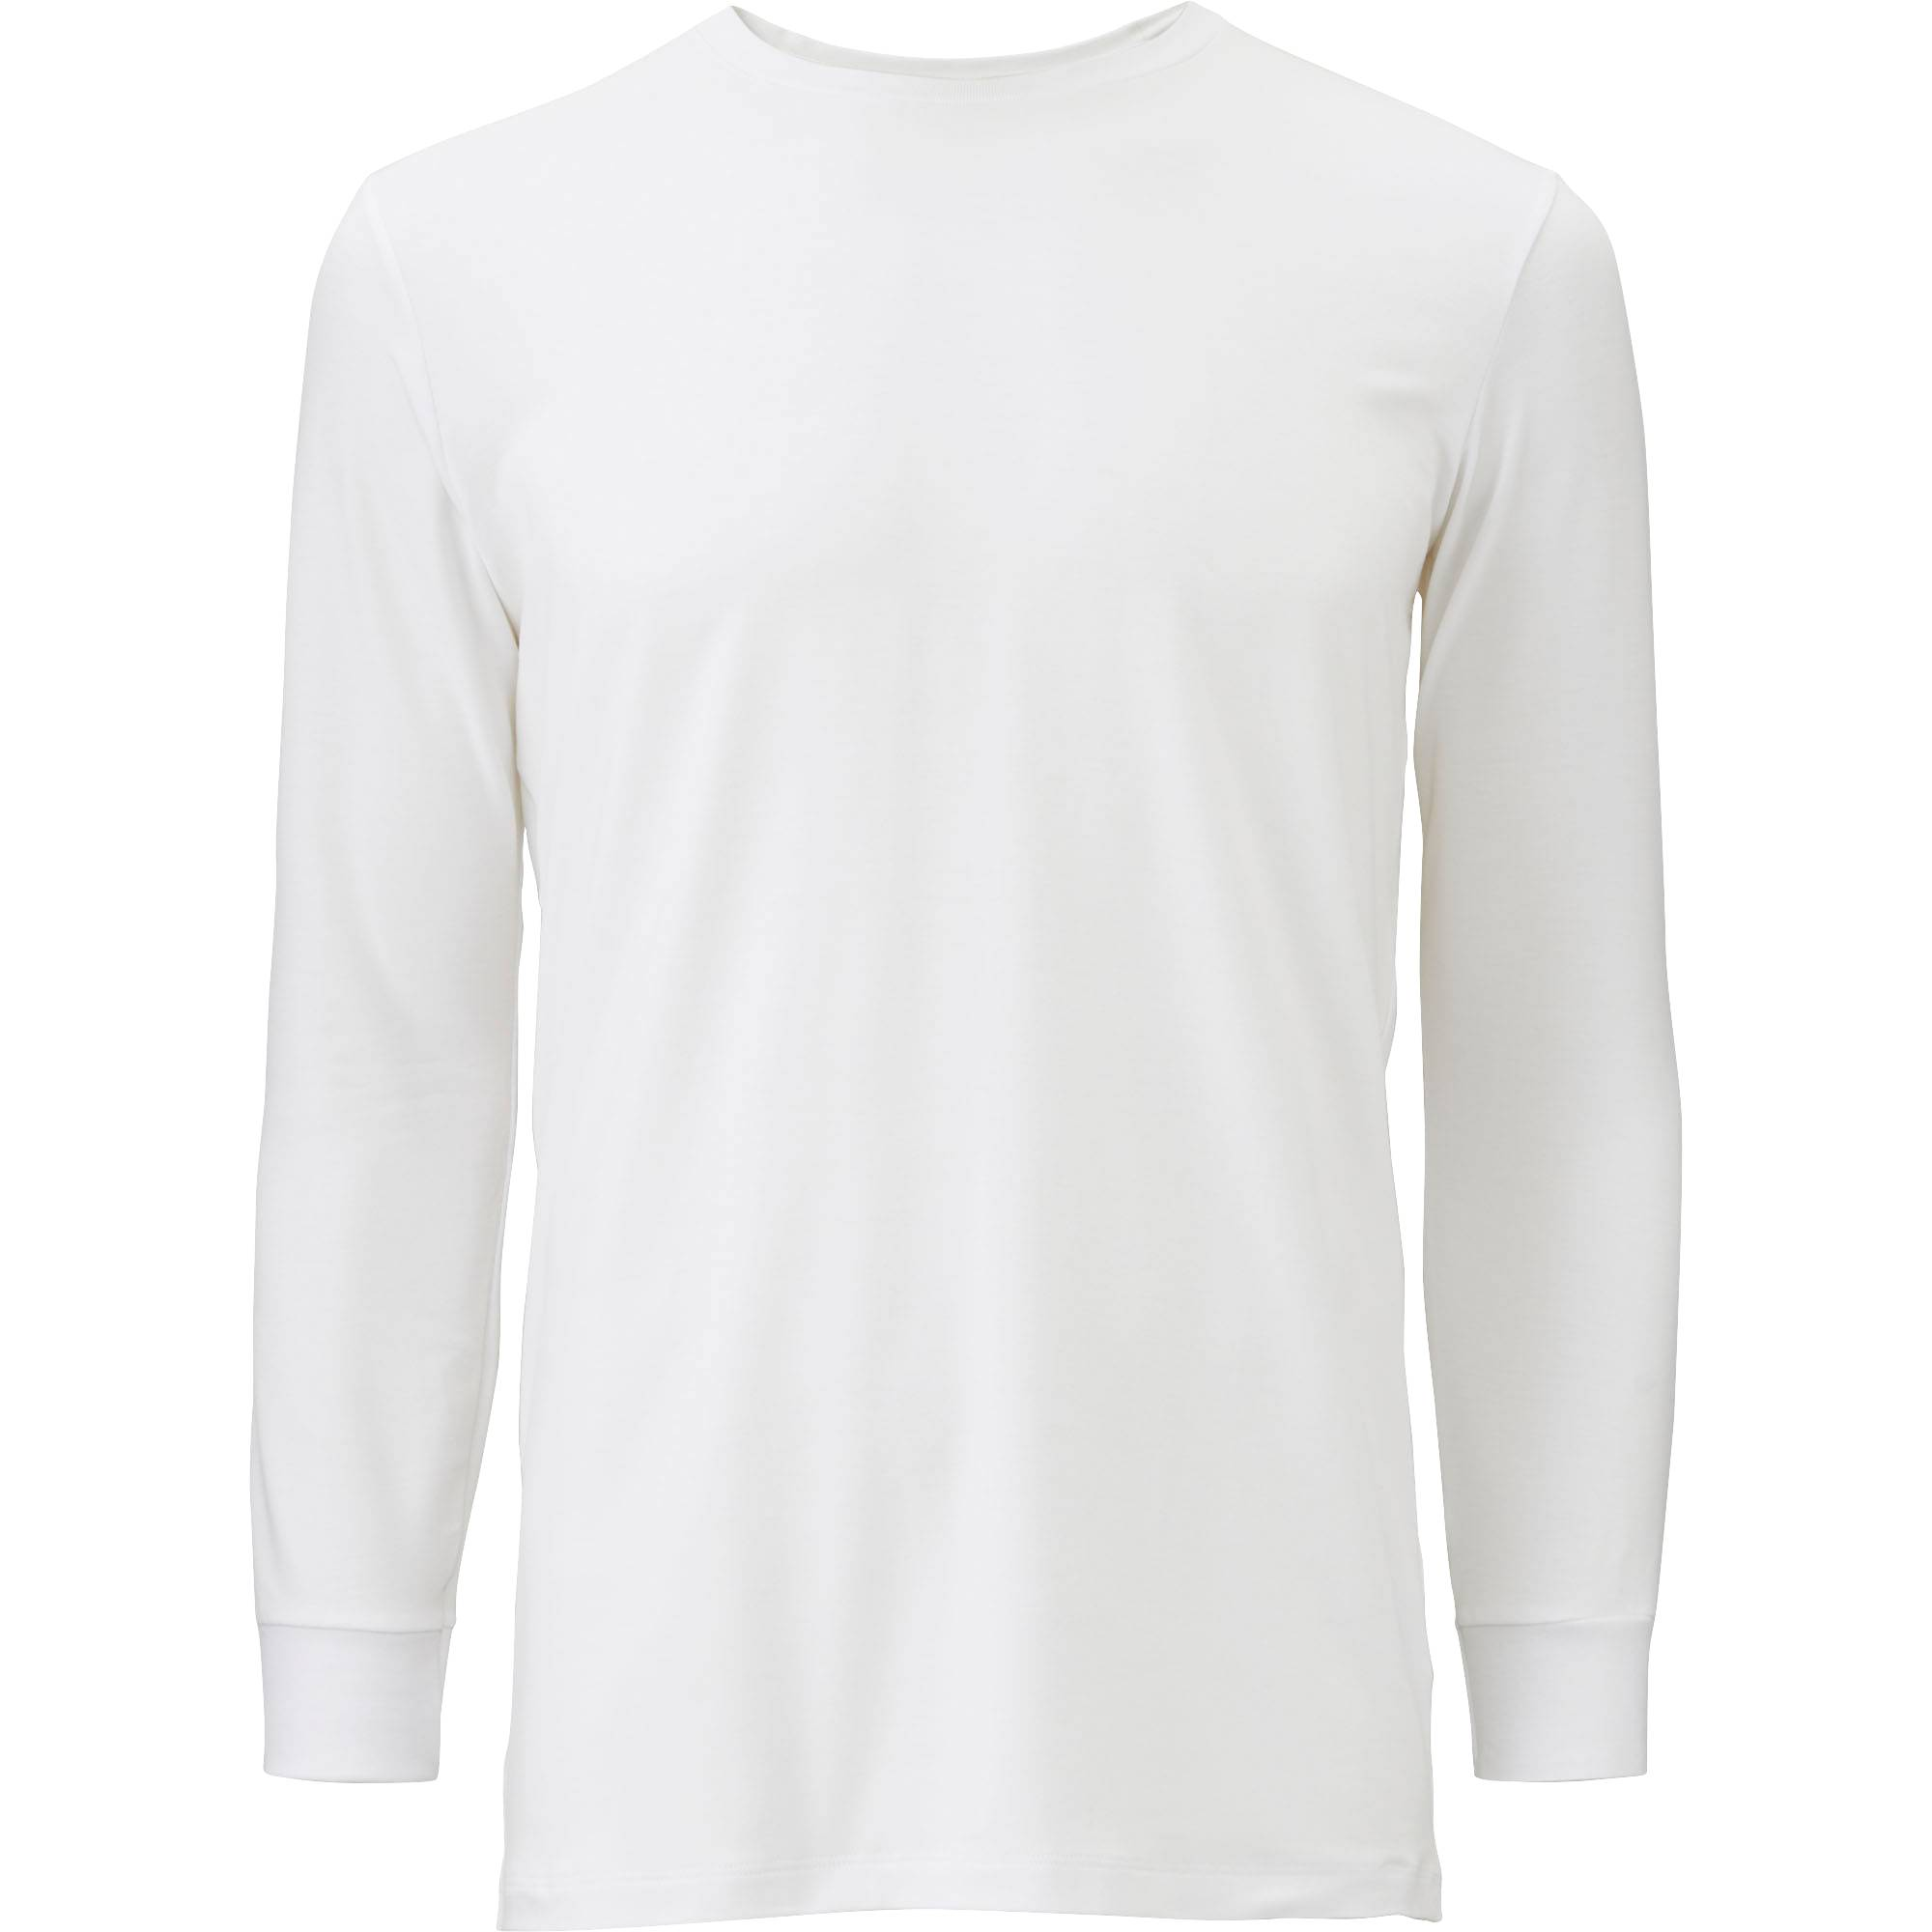 MEN HEATTECH EXTRA WARM T-SHIRT (LONG SLEEVE) | UNIQLO US